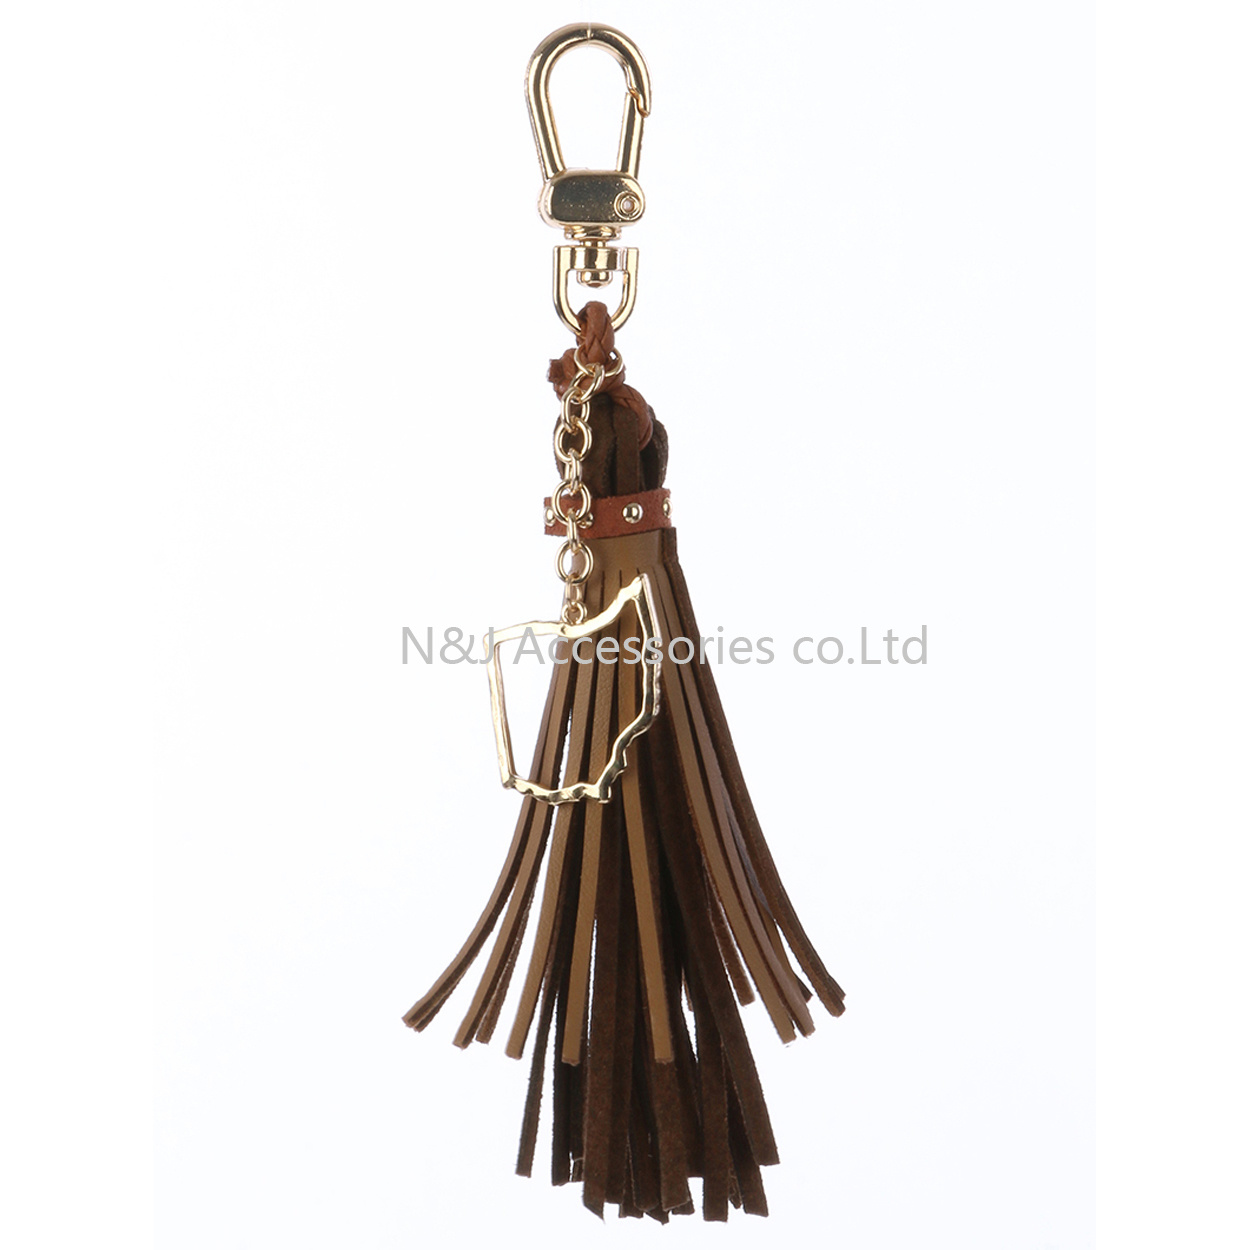 State of Ohio Charm Faux Leather Tassel Key Chain Ornament Gift